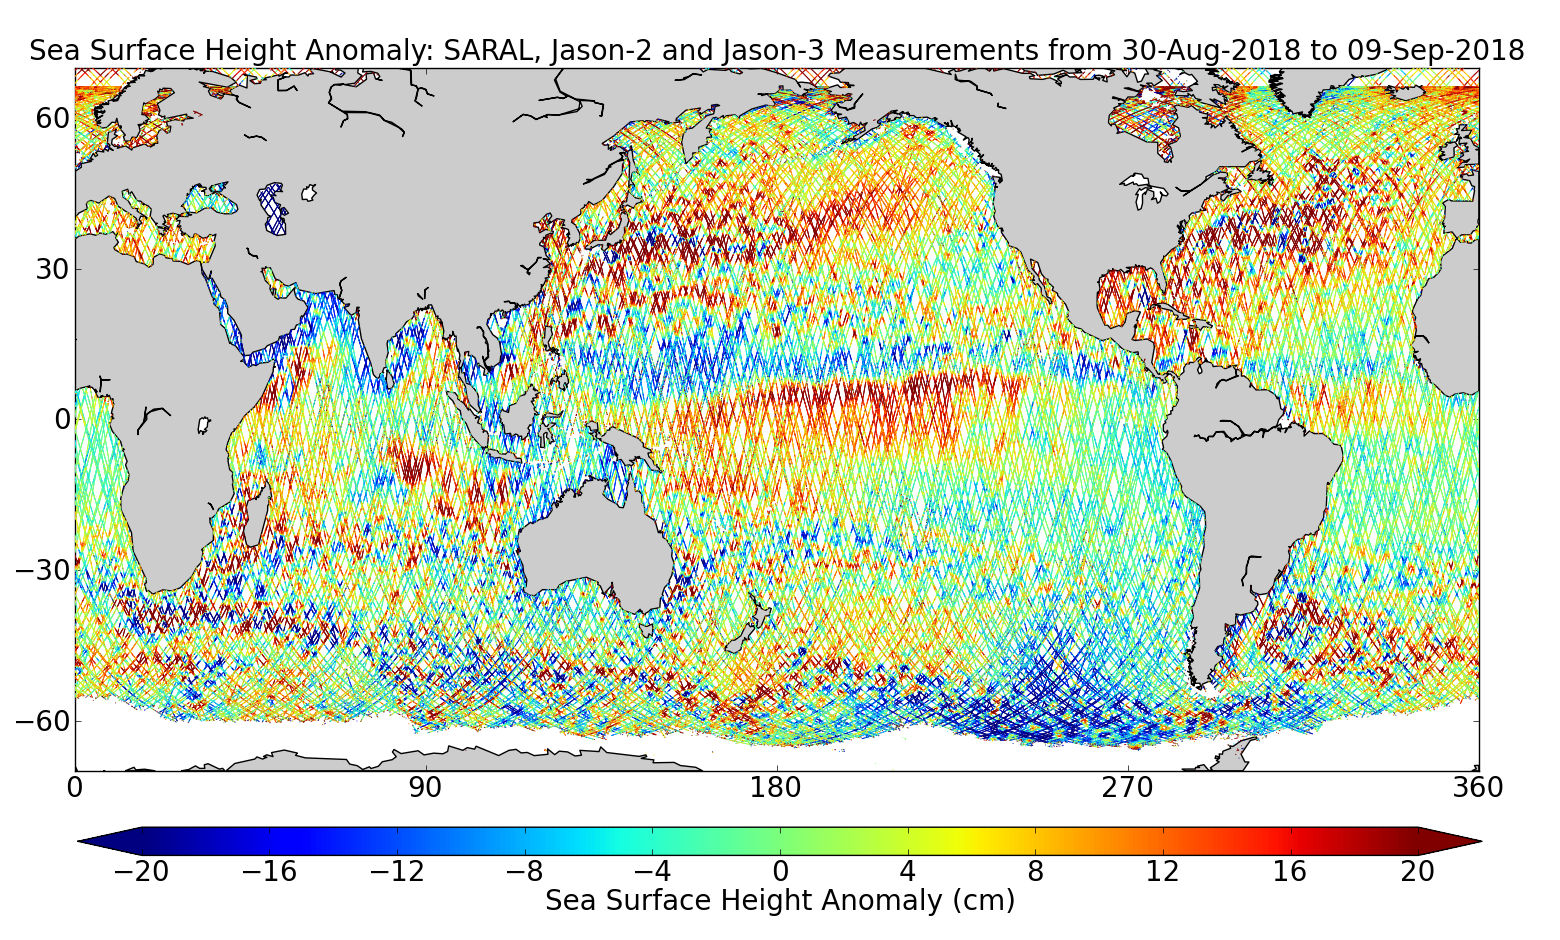 Sea Surface Height Anomaly: SARAL, Jason-2 and Jason-3 Measurements from 30-Aug-2018 to 09-Sep-2018